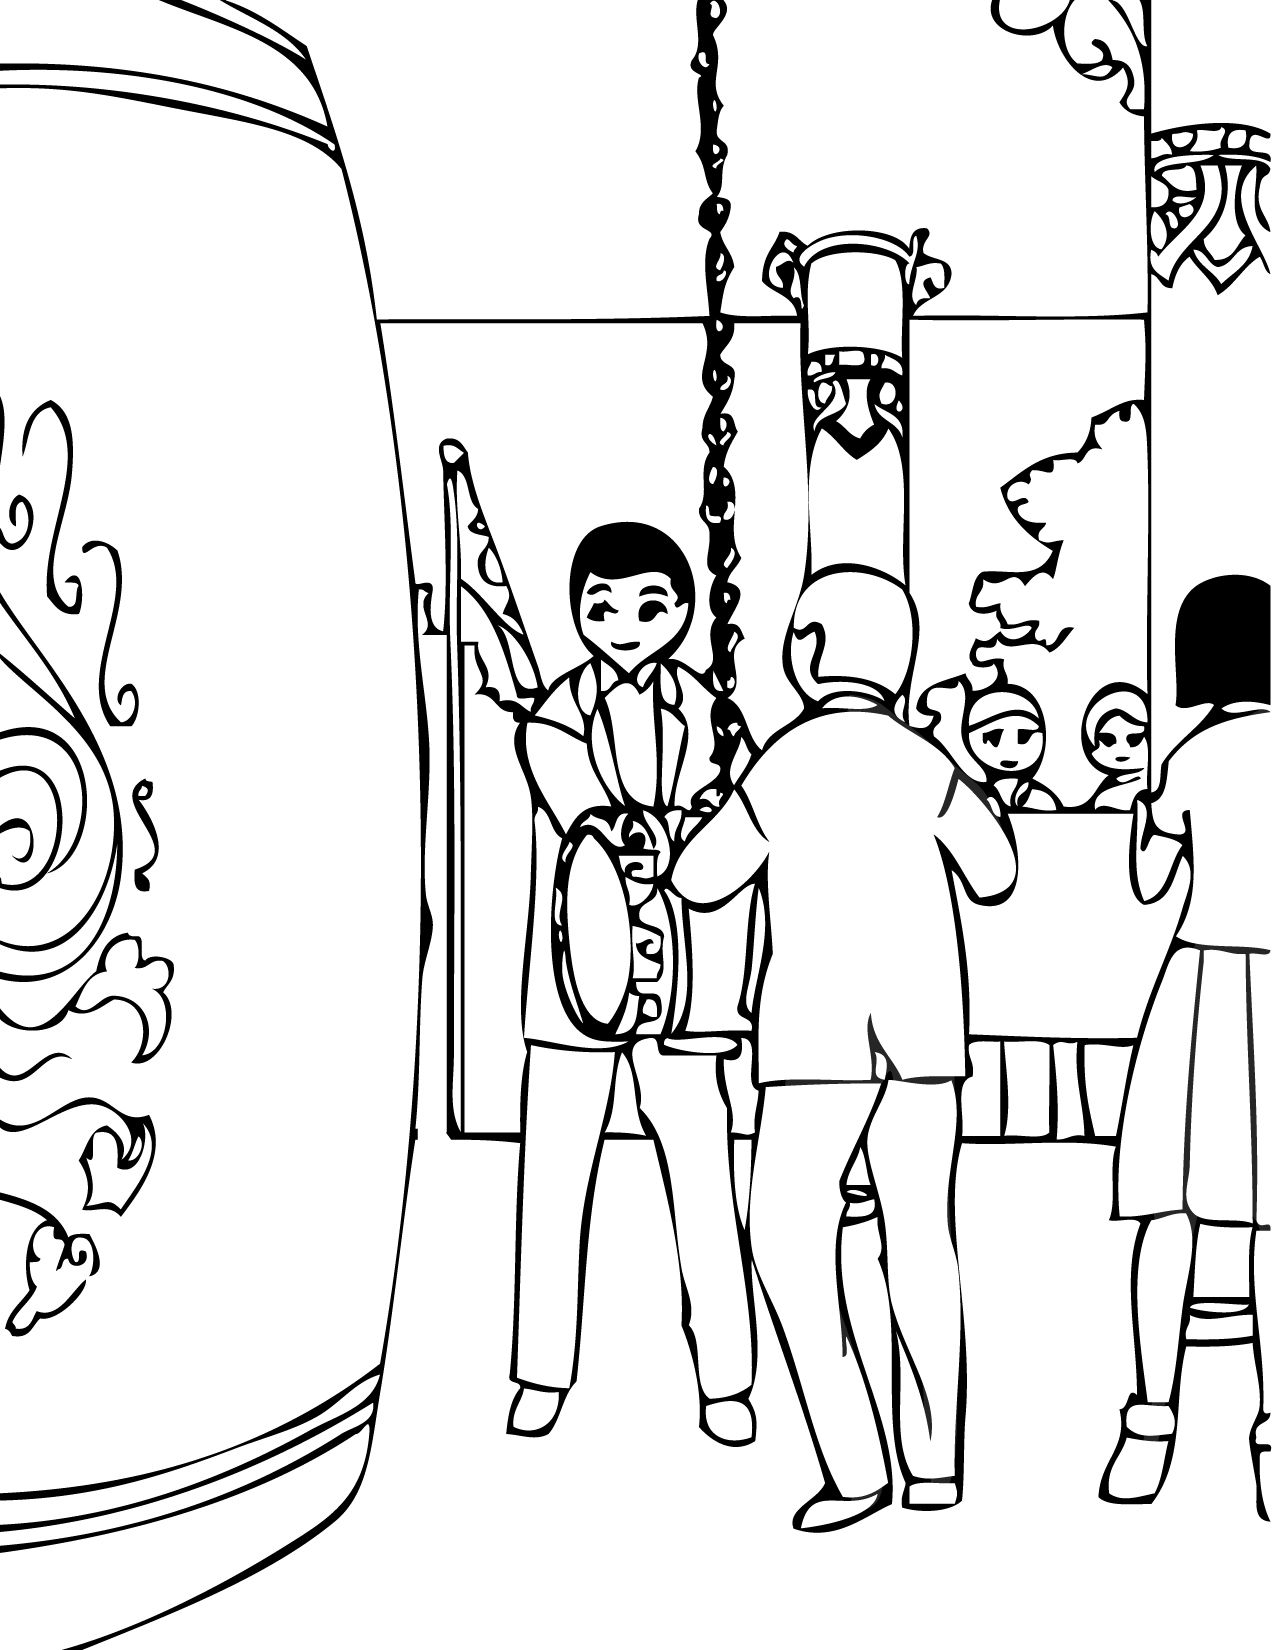 korea coloring page print this page korean holidays coloring pages coloring pages